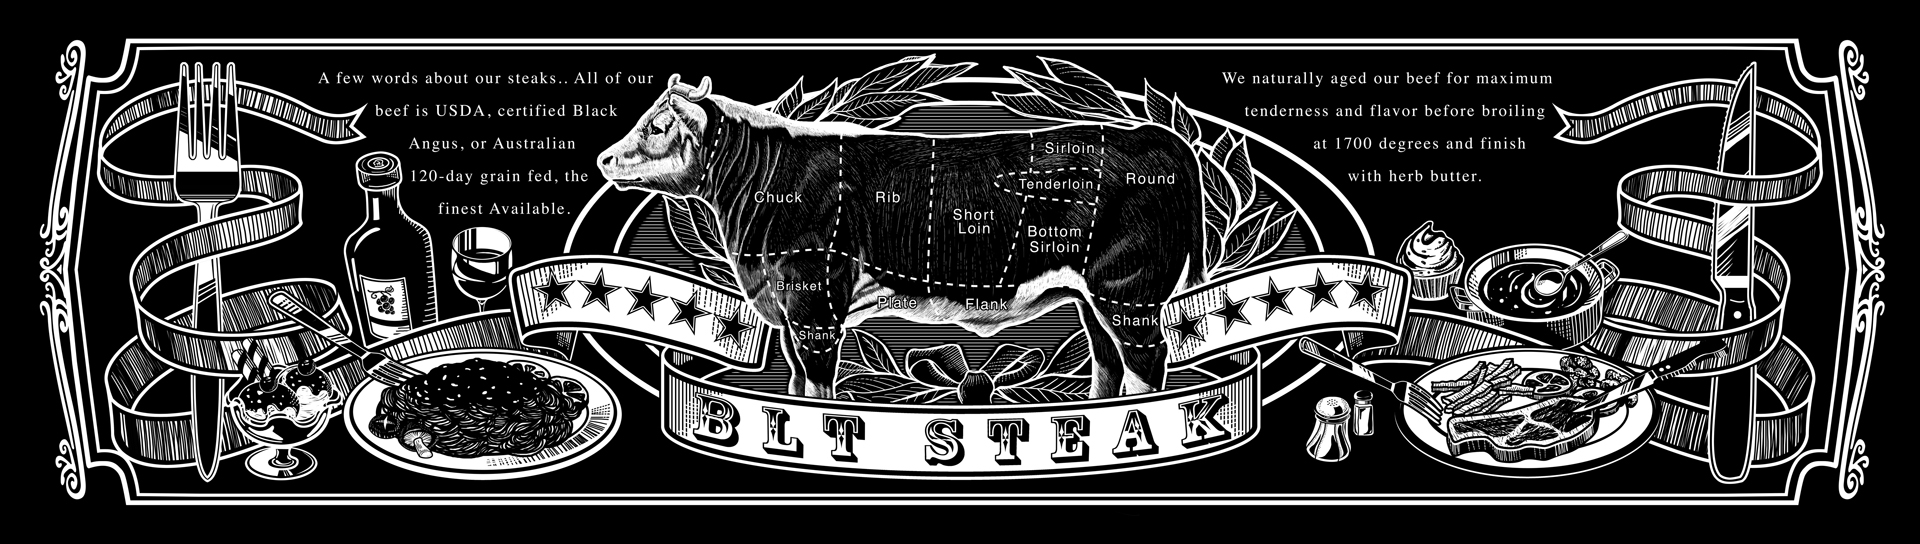 BLT STEAK wall sticker